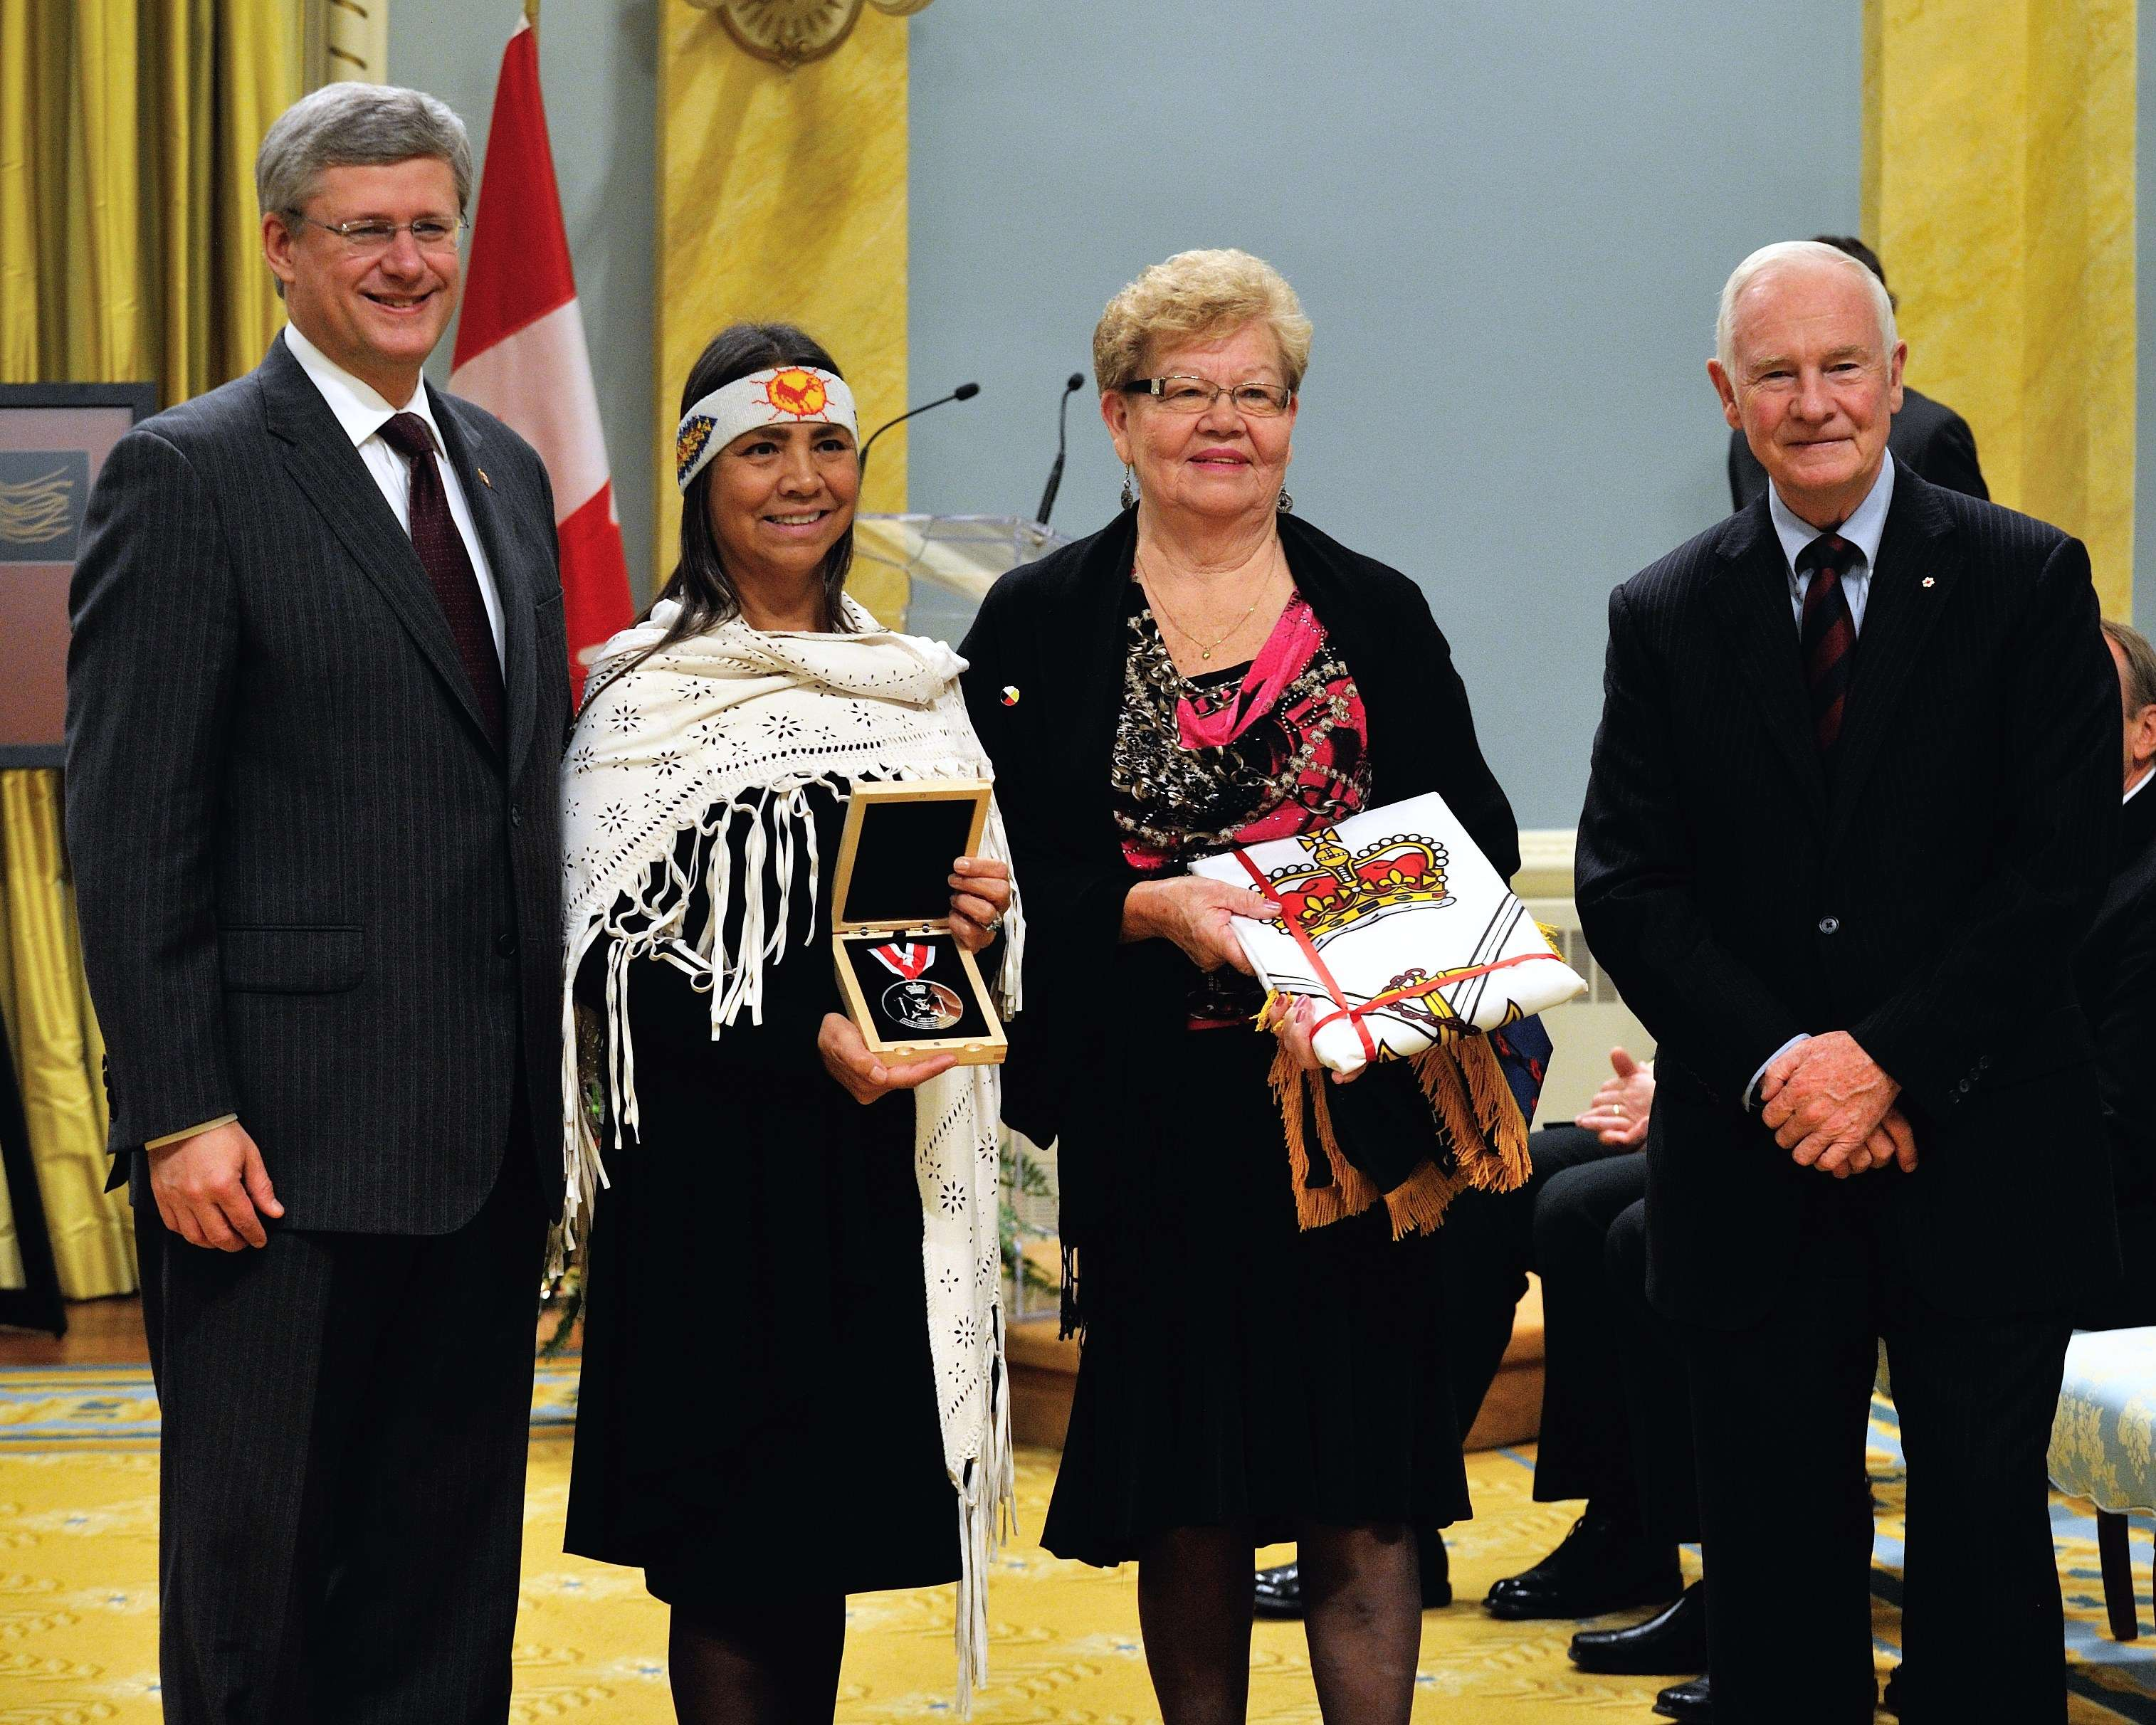 On the occasion of the War of 1812 National Recognition Ceremony, His Excellency, accompanied by the Right Honourable Stephen Harper, Prime Minister of Canada, presented First Nations and Métis communities with a Commemorative War of 1812 medal and banner. In the photo, the Prime Minister and the Governor General are with Chief Sharon Stinson Henry and Myrna Watson, representatives of Chippewas of Rama First Nation.